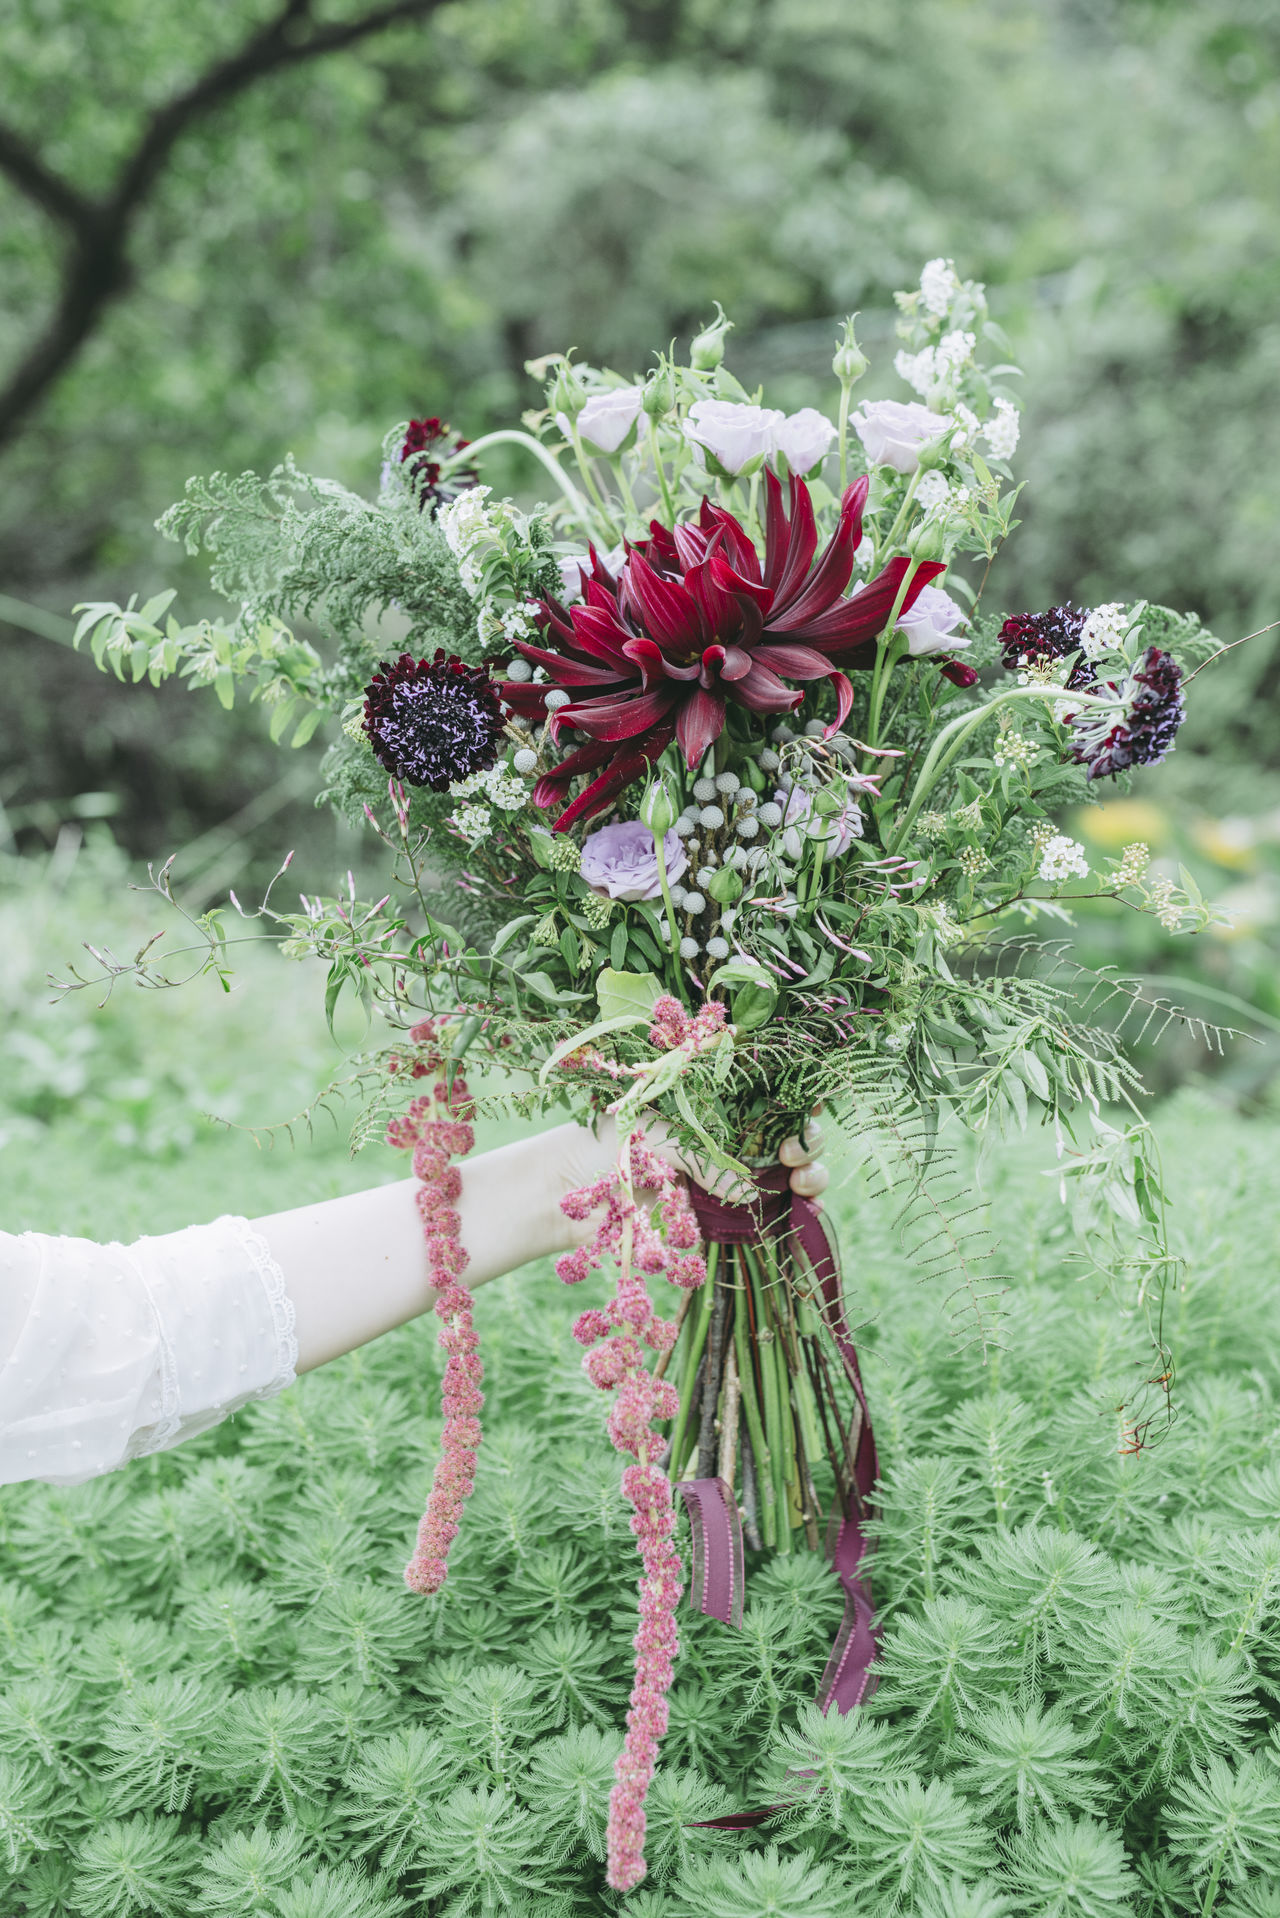 Adult Adults Only Bouquet Close-up Day Flower Flower Head Focus On Foreground Freshness Green Color Holding Human Body Part Human Hand Mid Adult Nature Old-fashioned One Person One Woman Only Only Women Outdoors People Red